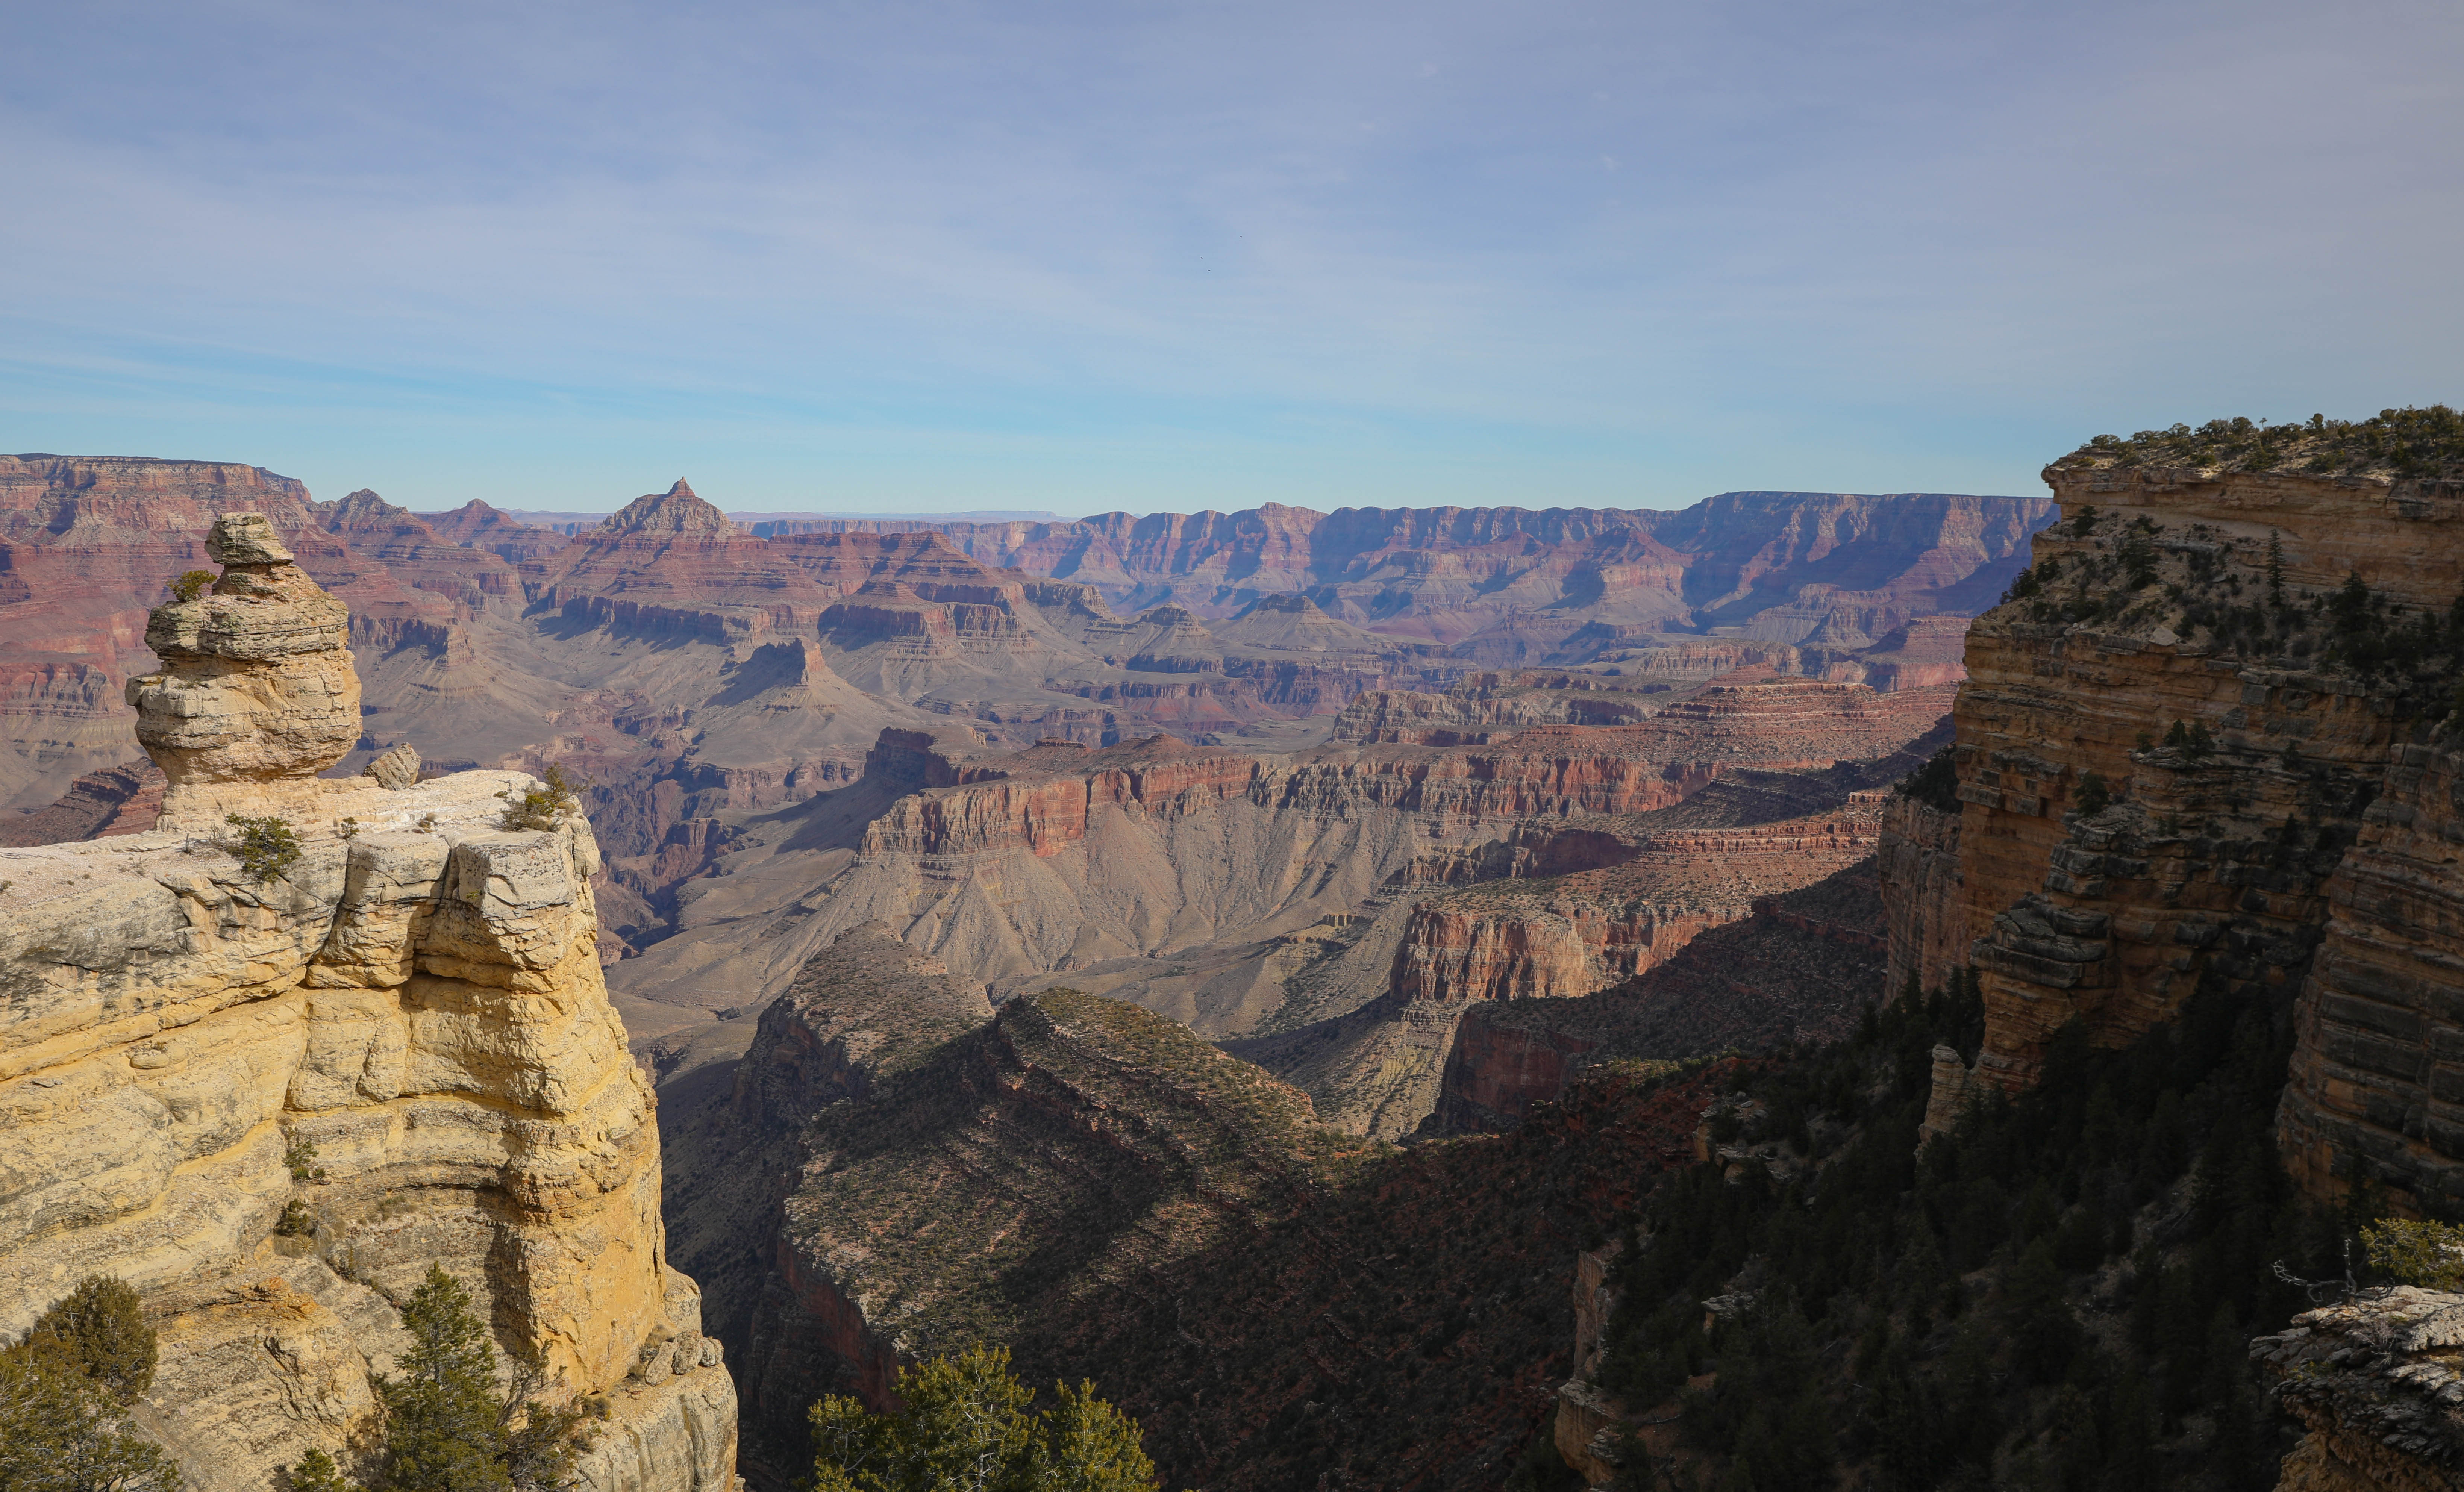 A view of the Grand Canyon from the Desert View Drive in the Grand Canyon National Park.